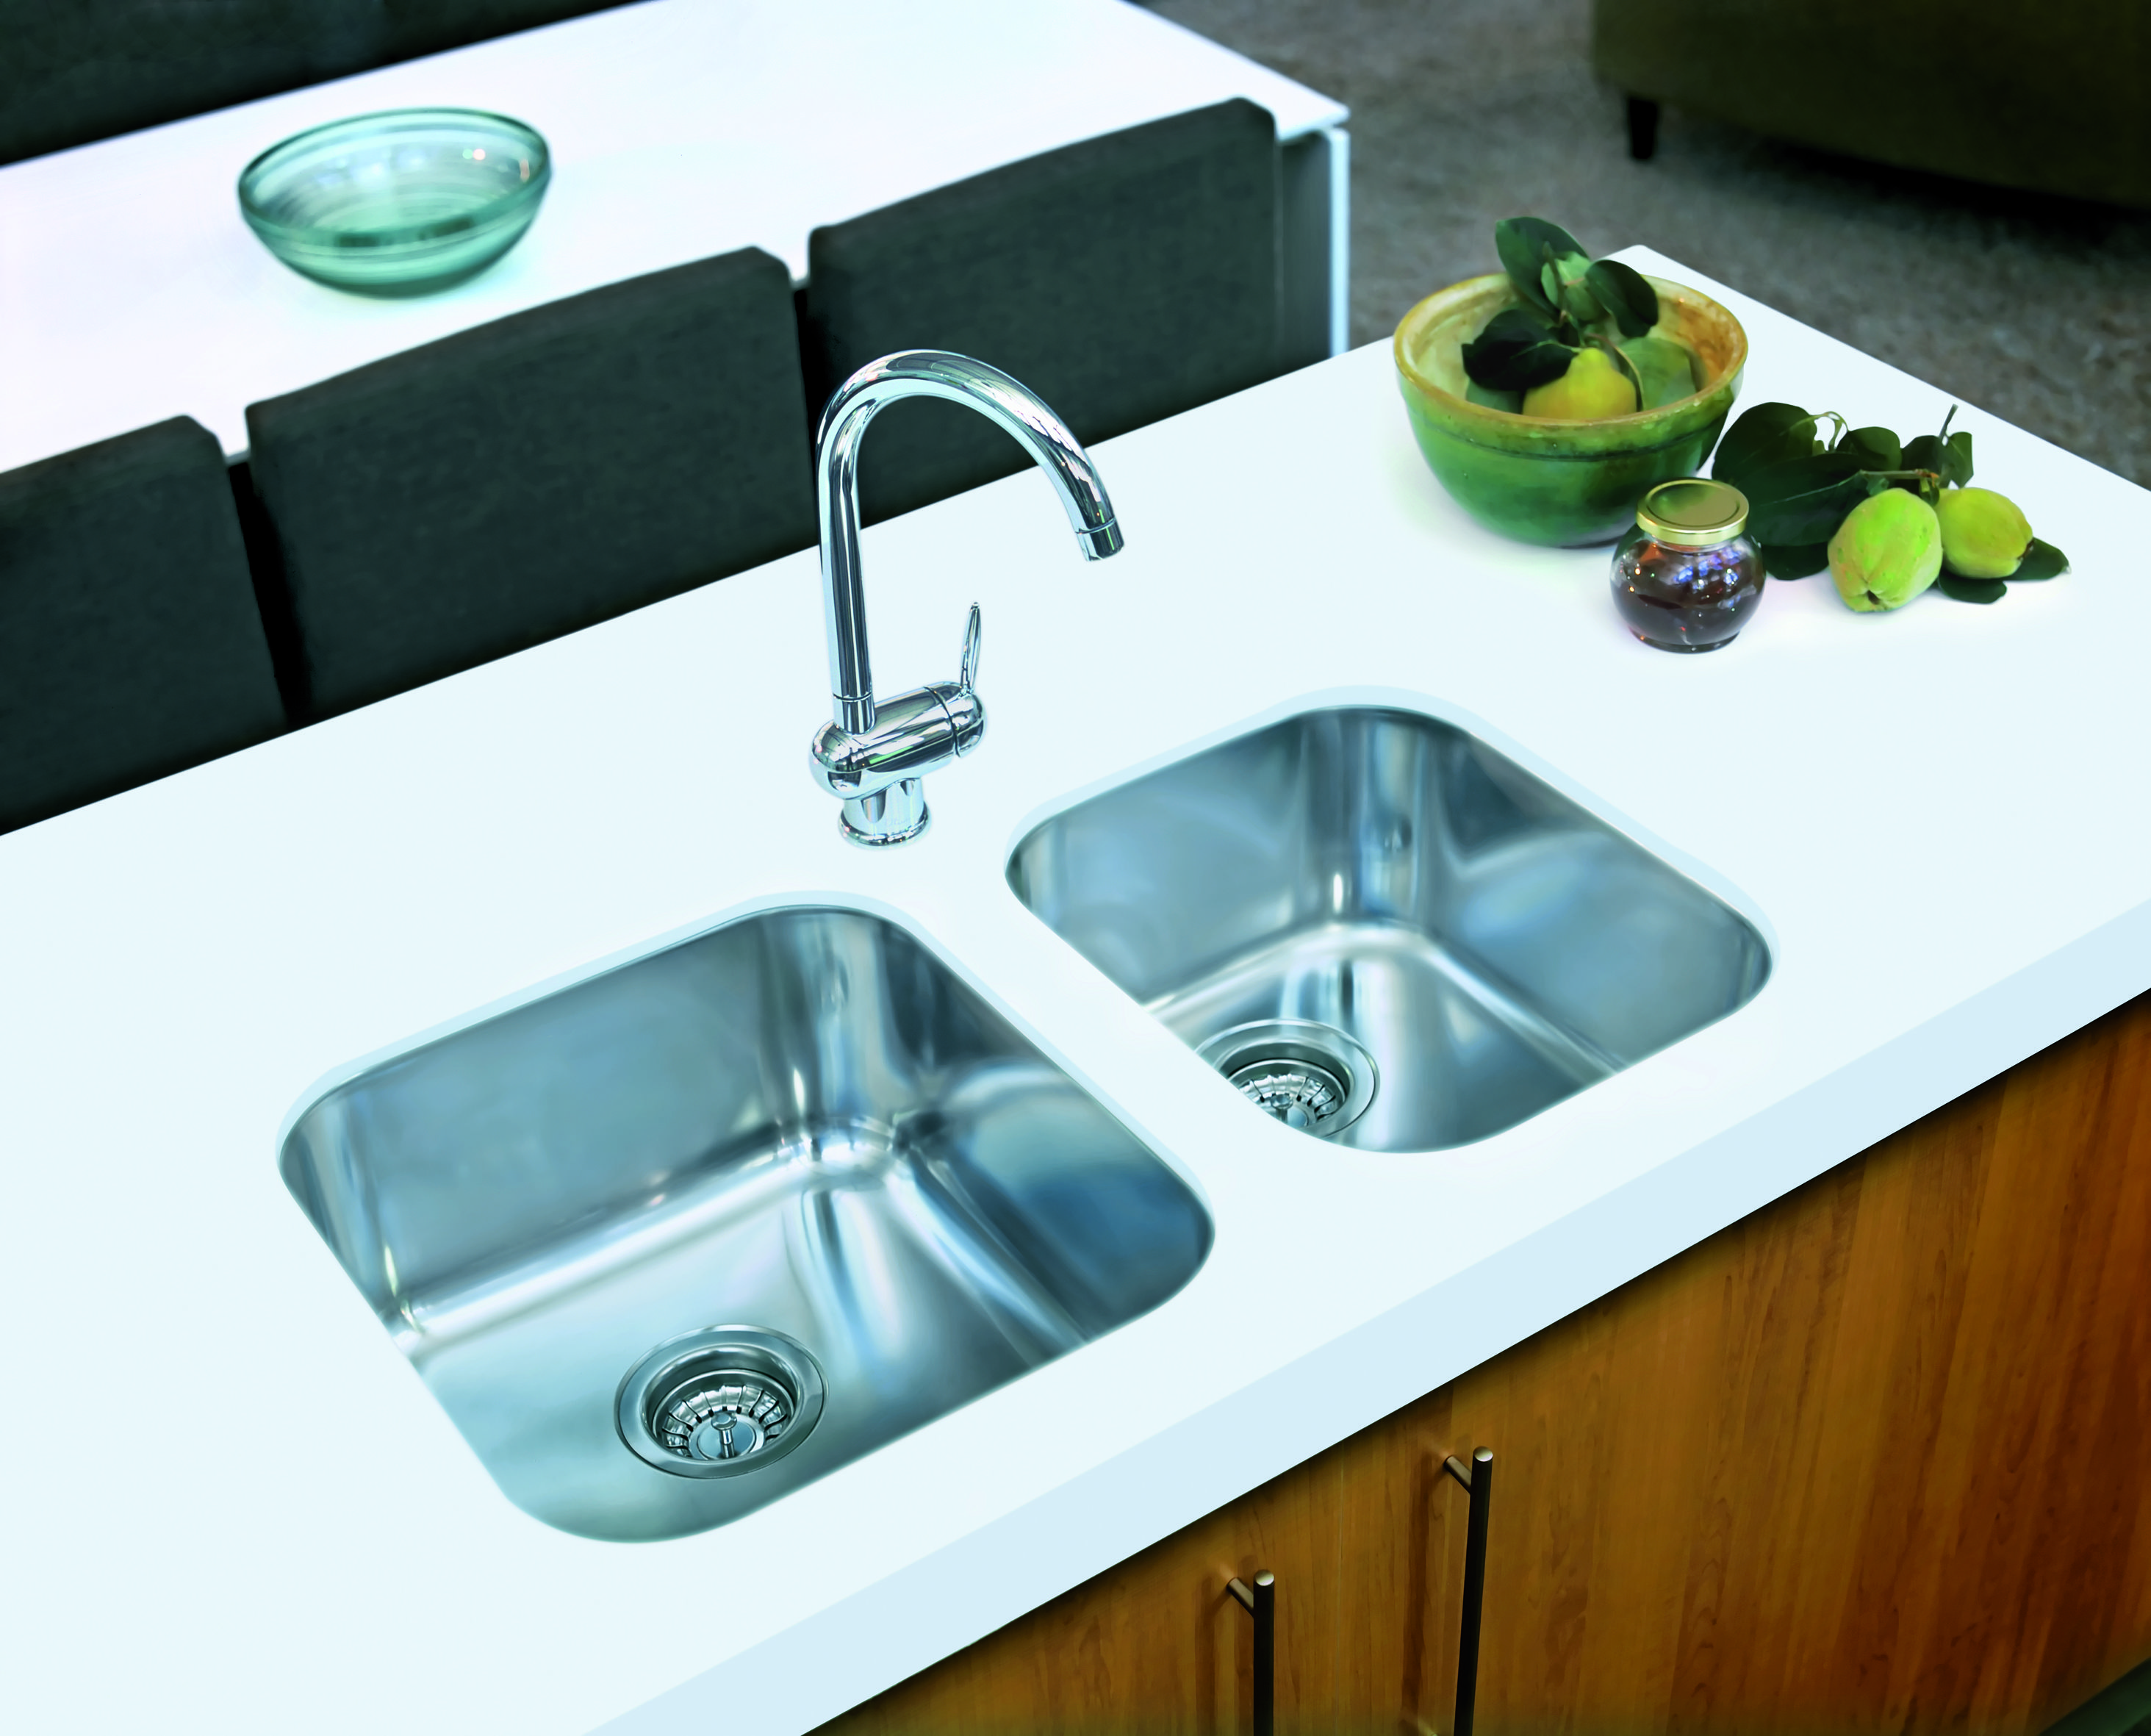 Oliveri sink - For more information on this product visit www.rdd ...